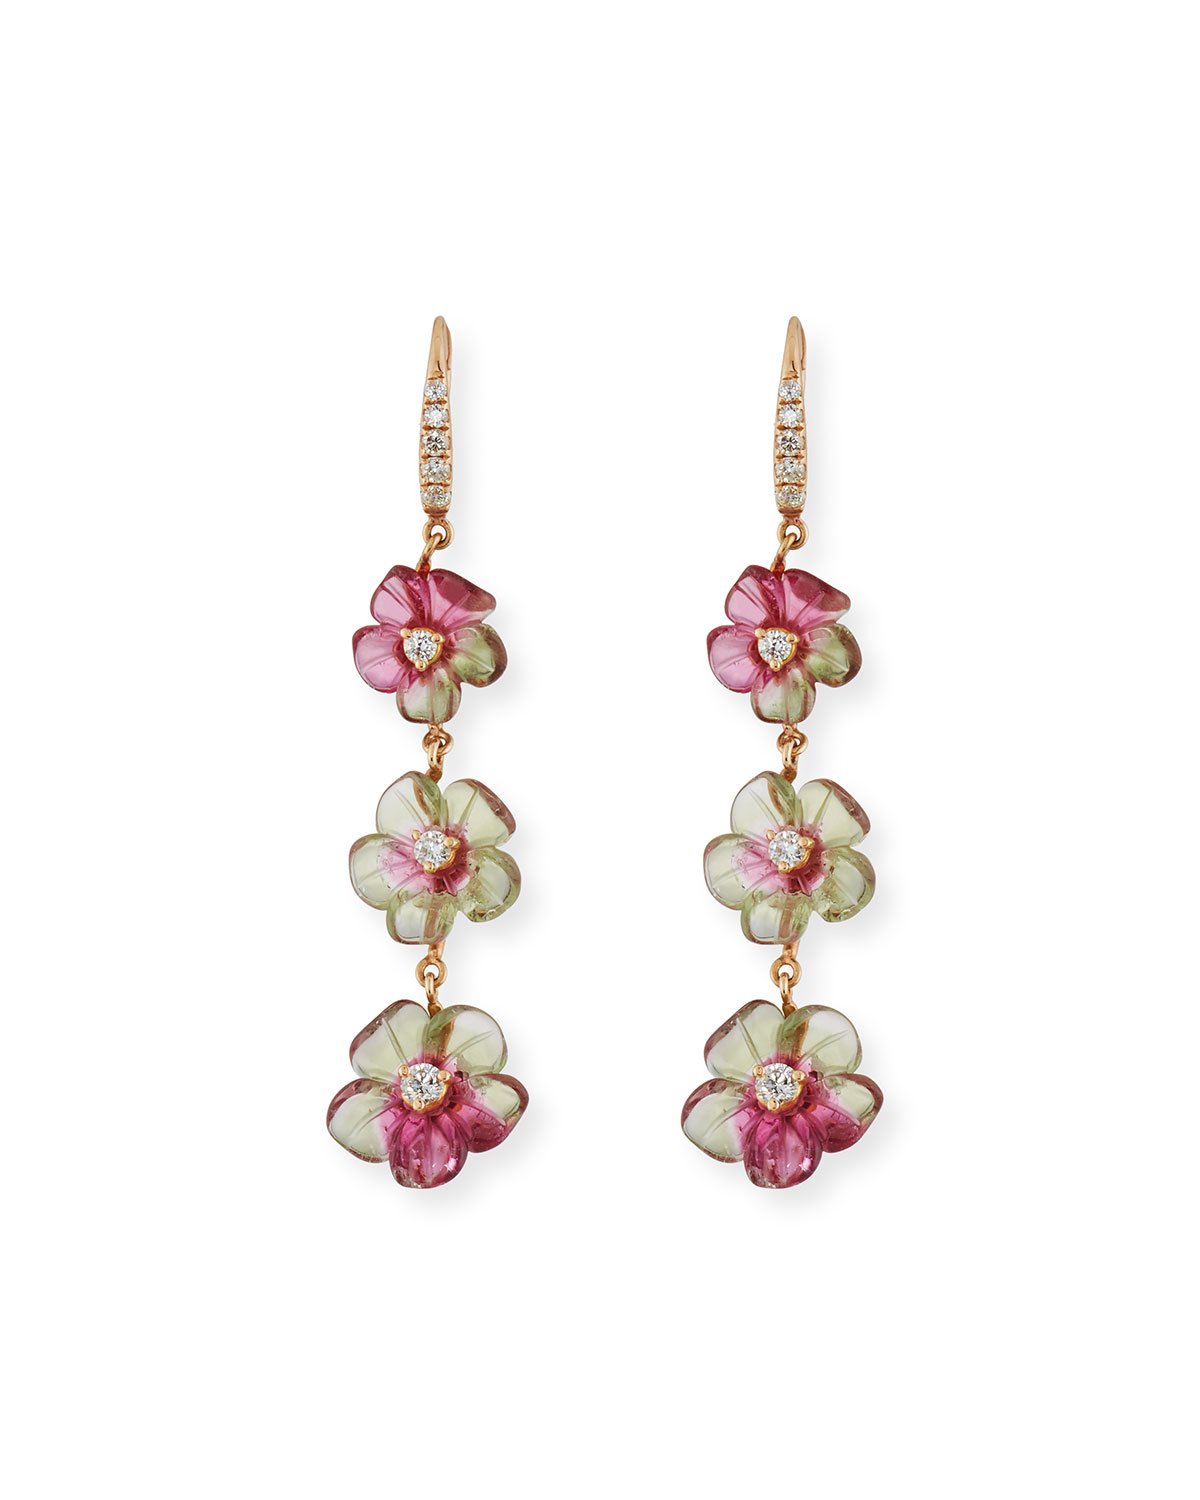 RINA LIMOR FLORAL TOURMALINE DROP EARRINGS WITH DIAMONDS